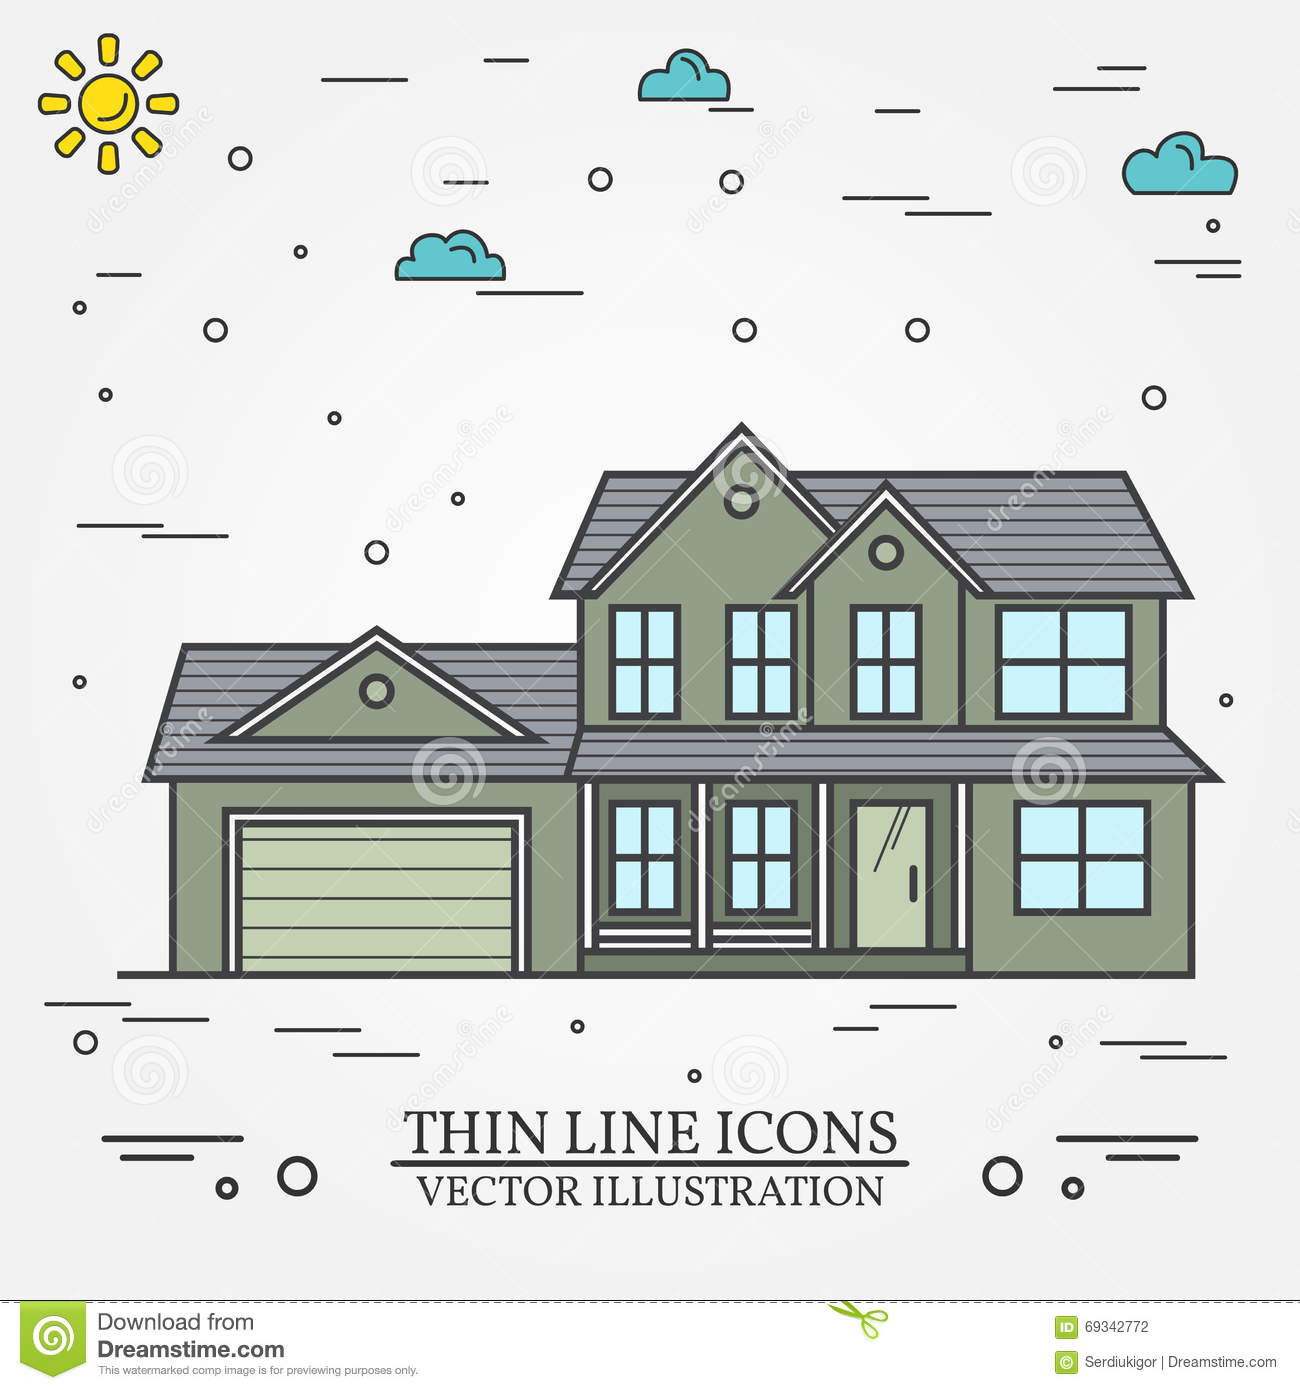 Vector thin line icon suburban american house for web design and application interface also useful for infographics vector dark grey